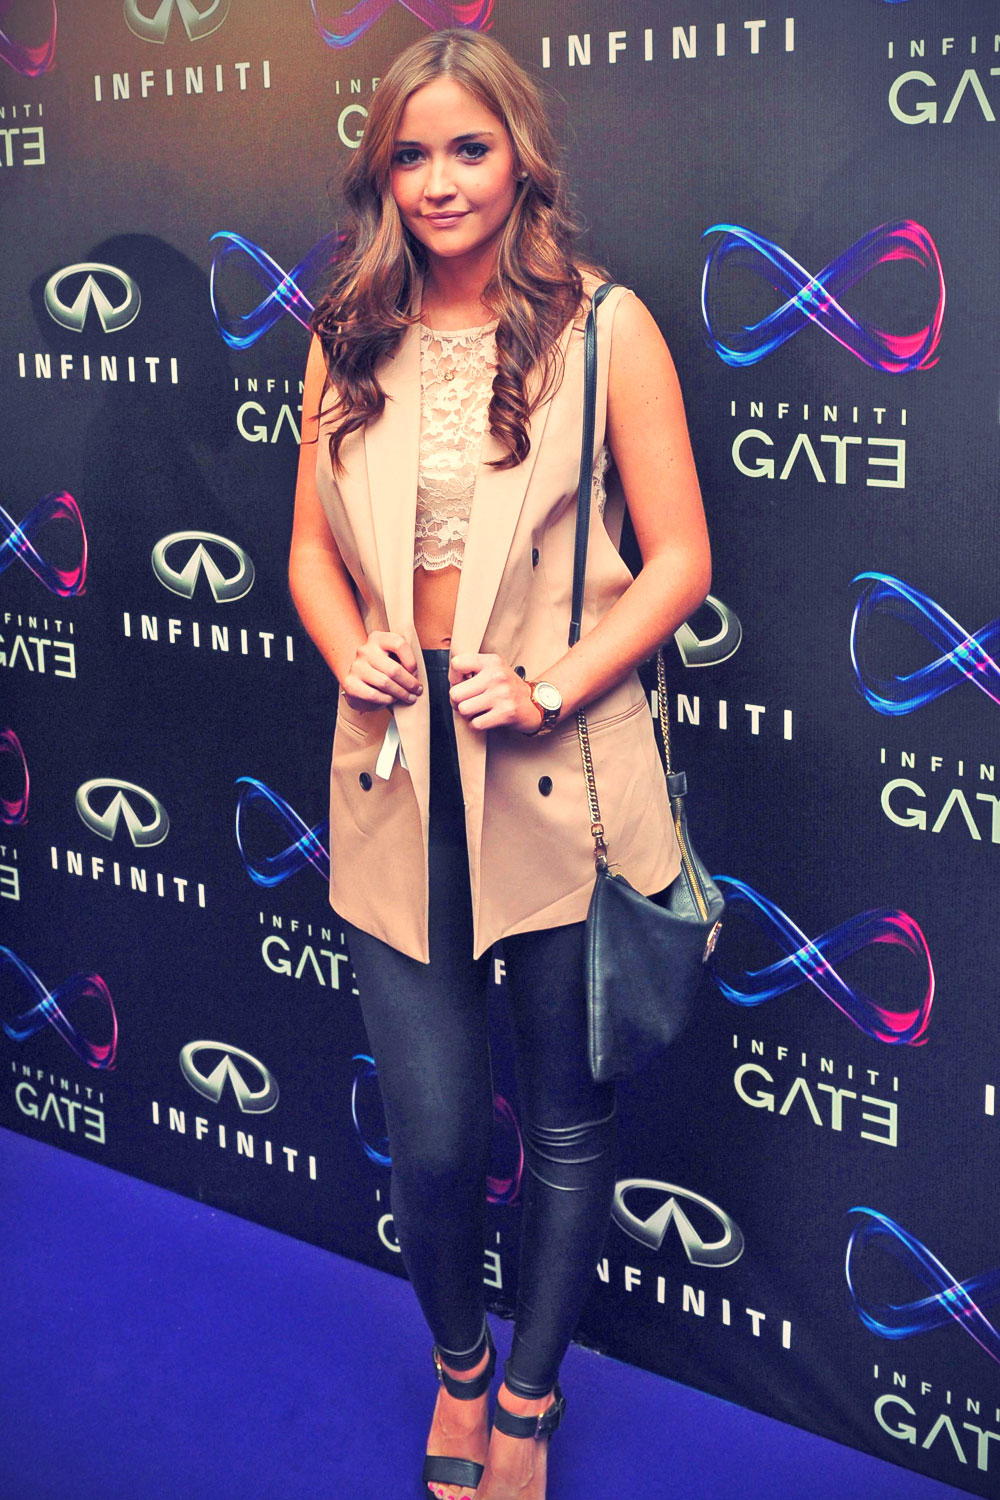 Jacqueline Jossa attends the Infiniti Gate Experience party